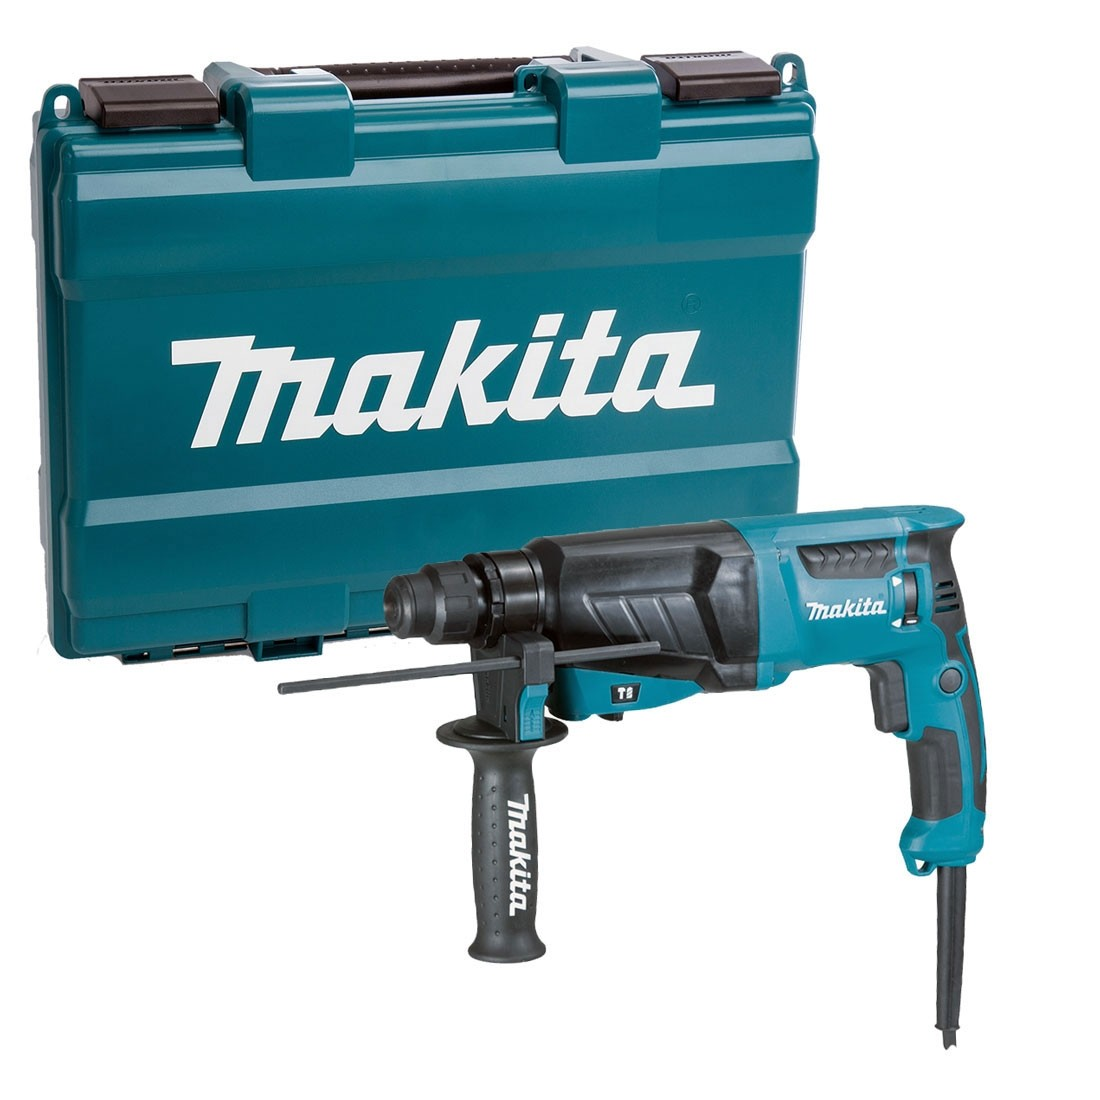 Makita HR2630 240V 3-Mode SDS Plus Rotary Hammer Drill 26mm - Variable Speed Control by Trigger